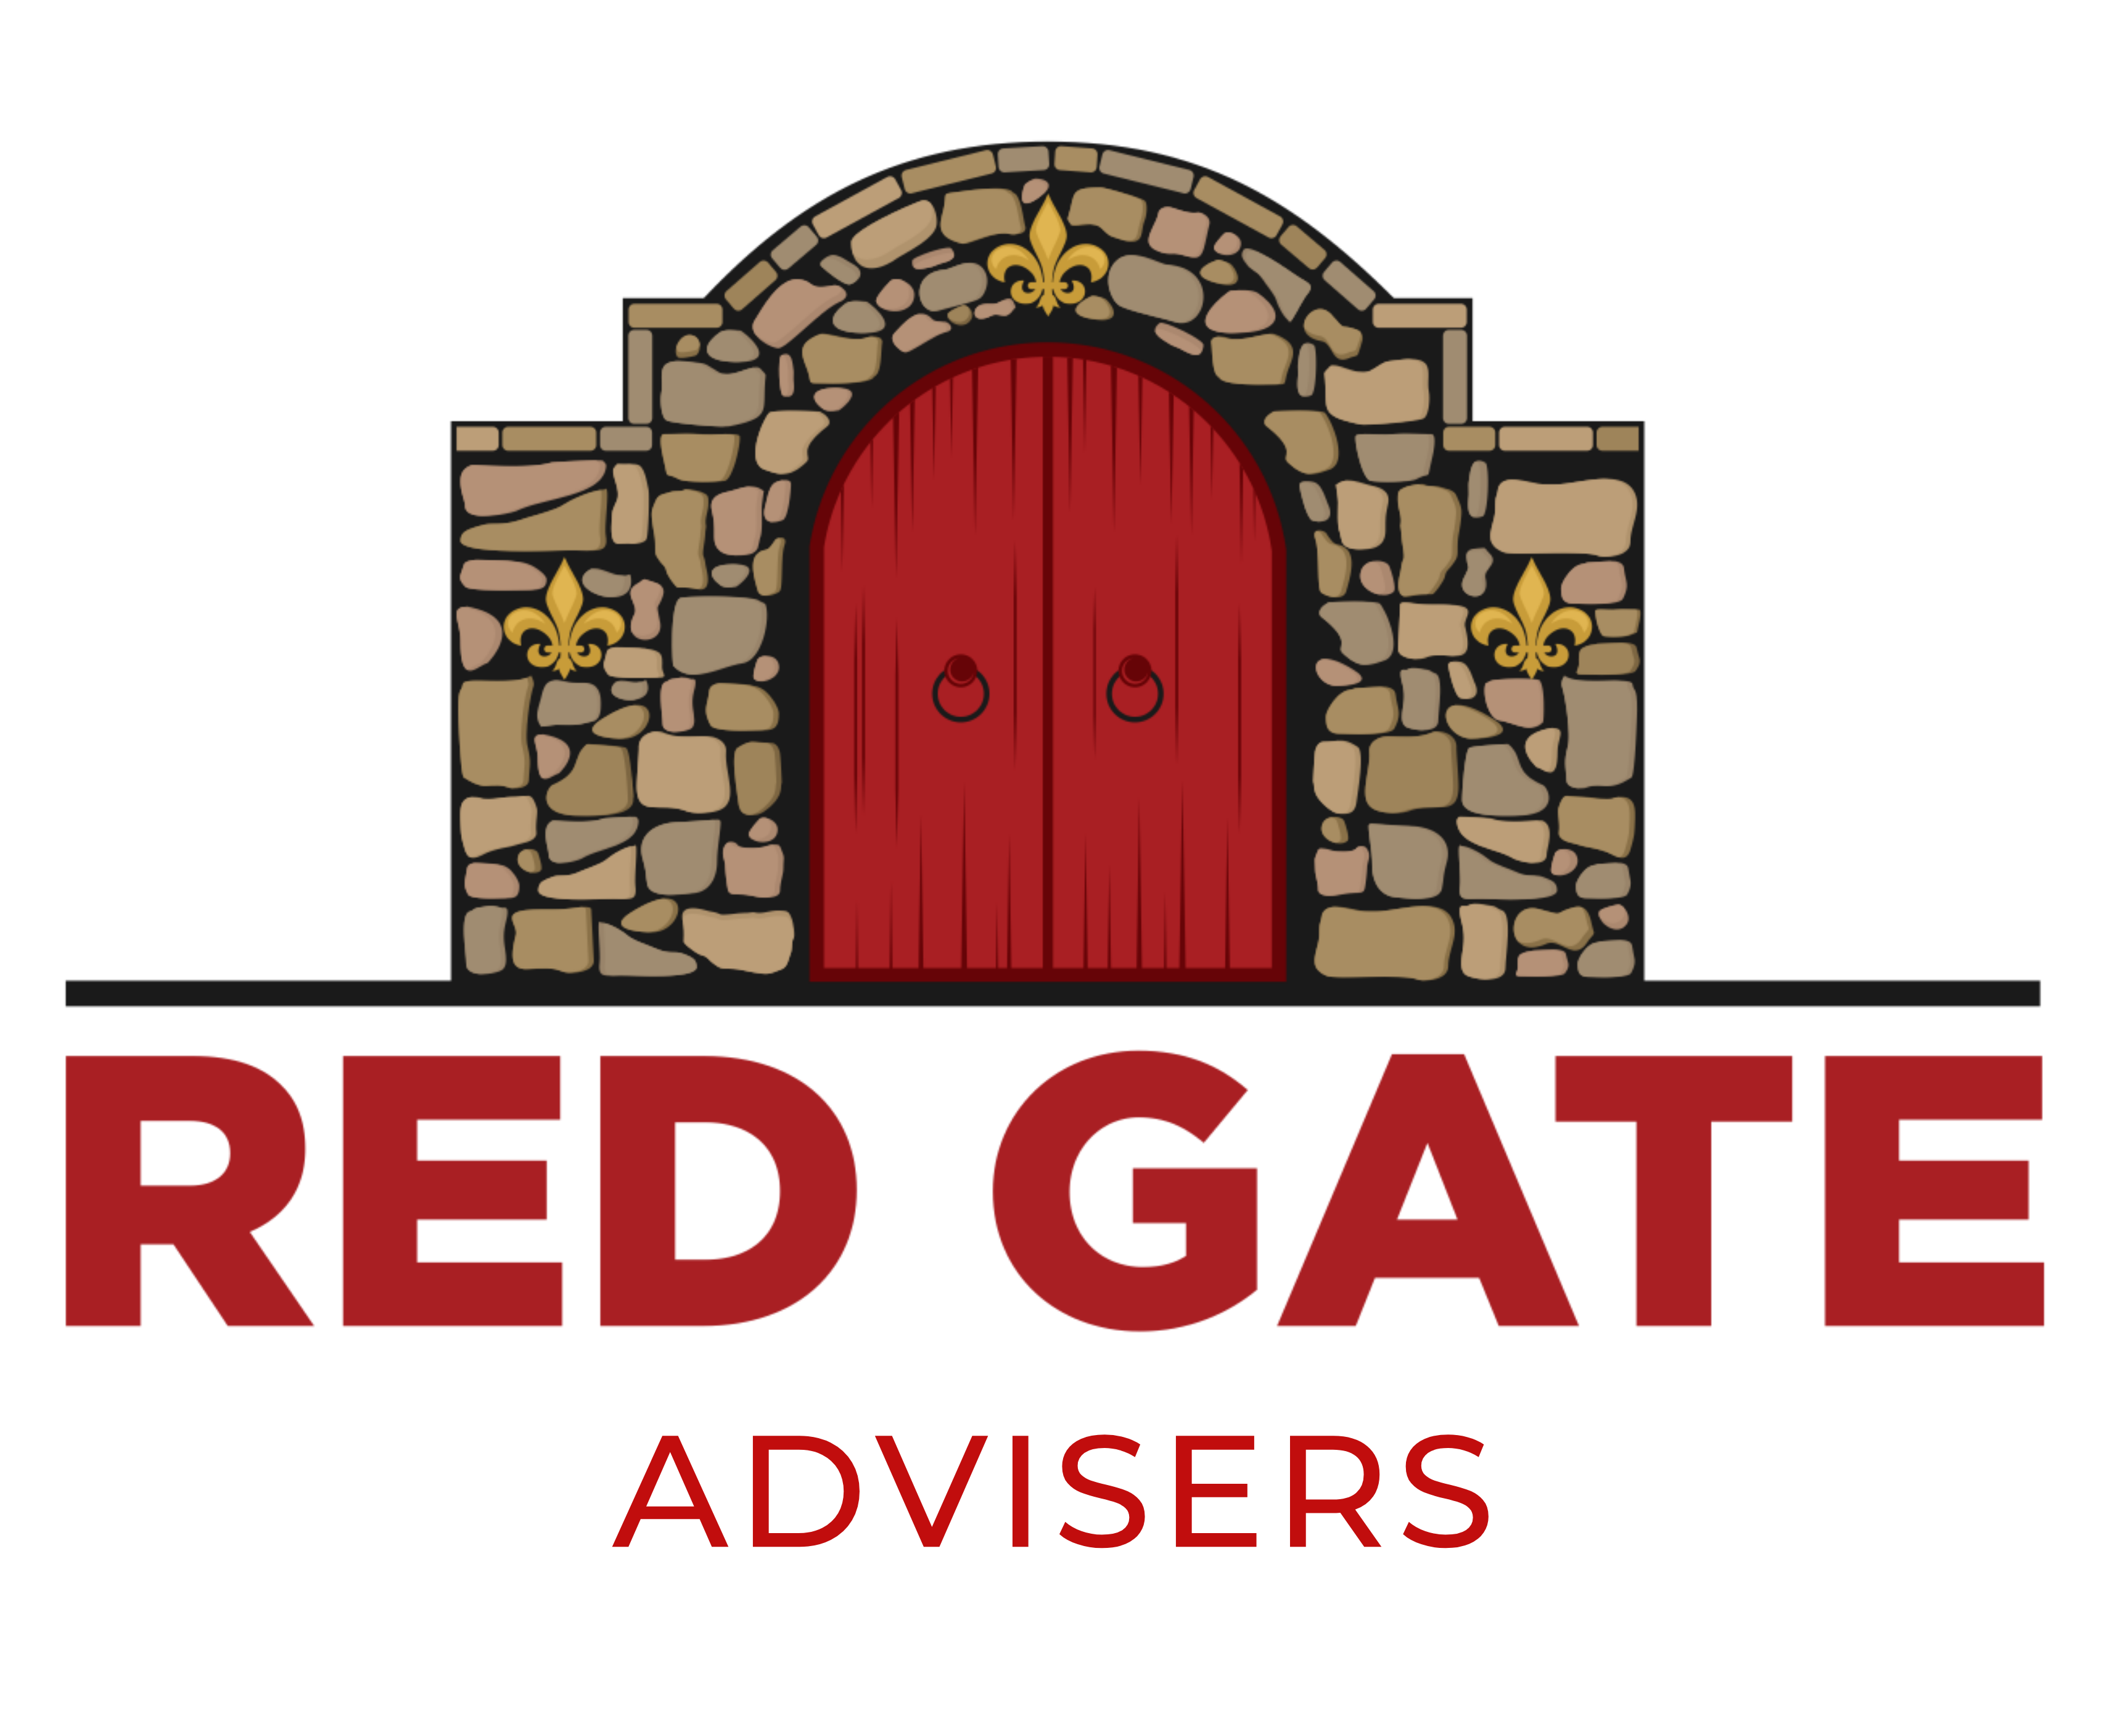 Red Gate Advisers